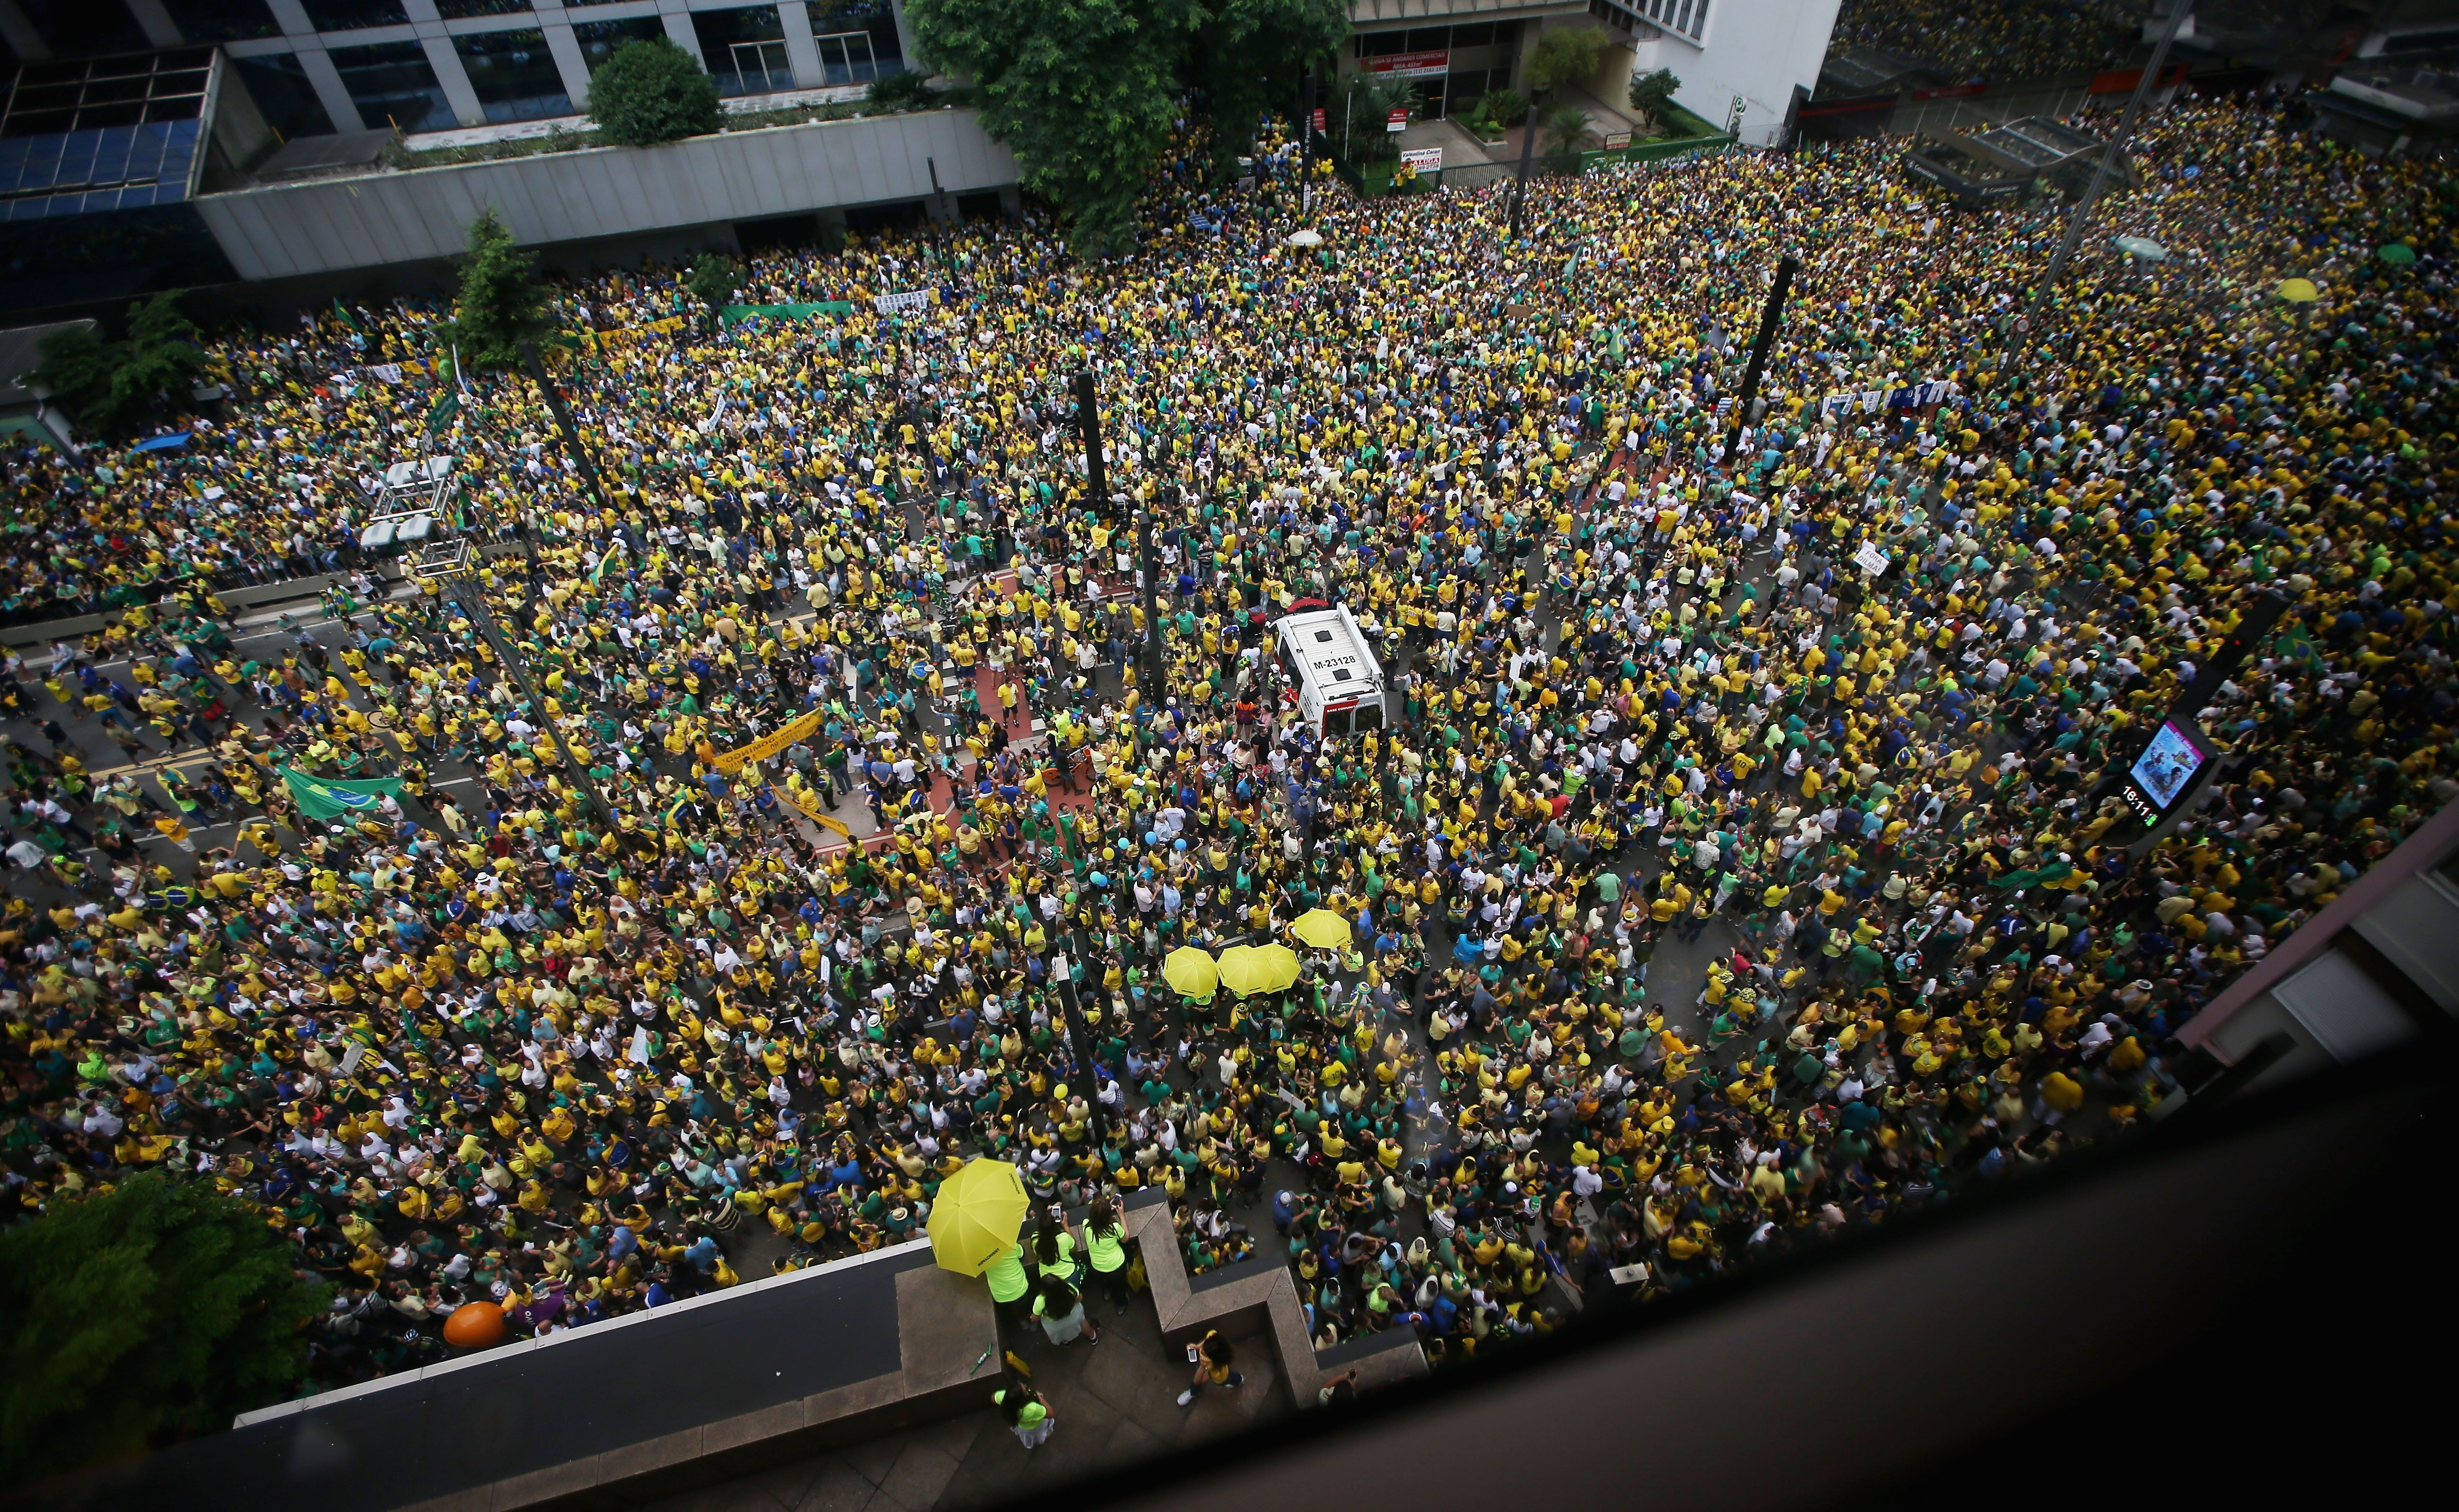 SAO PAULO, BRAZIL - MARCH 13: Anti-government protestors jam Avenida Paulista during a demonstration calling for the removal